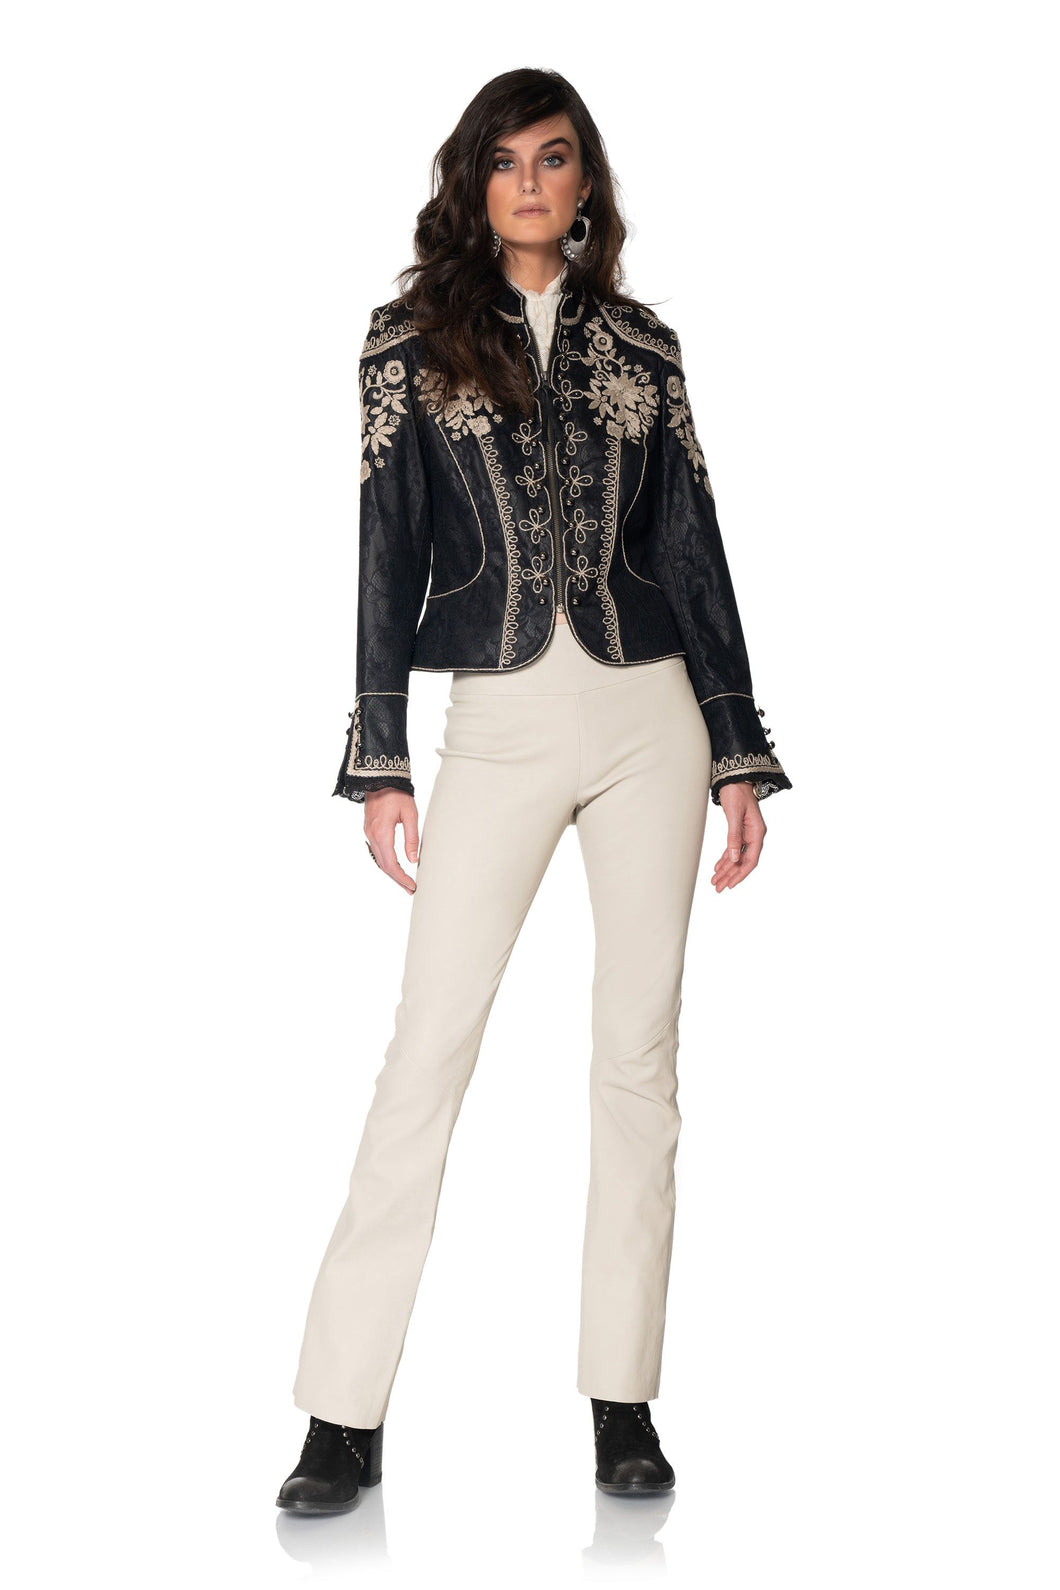 DDR Black and silver lace Dona Diego Jacket C2774 at 6Whiskey six whisky Maria spring 2021